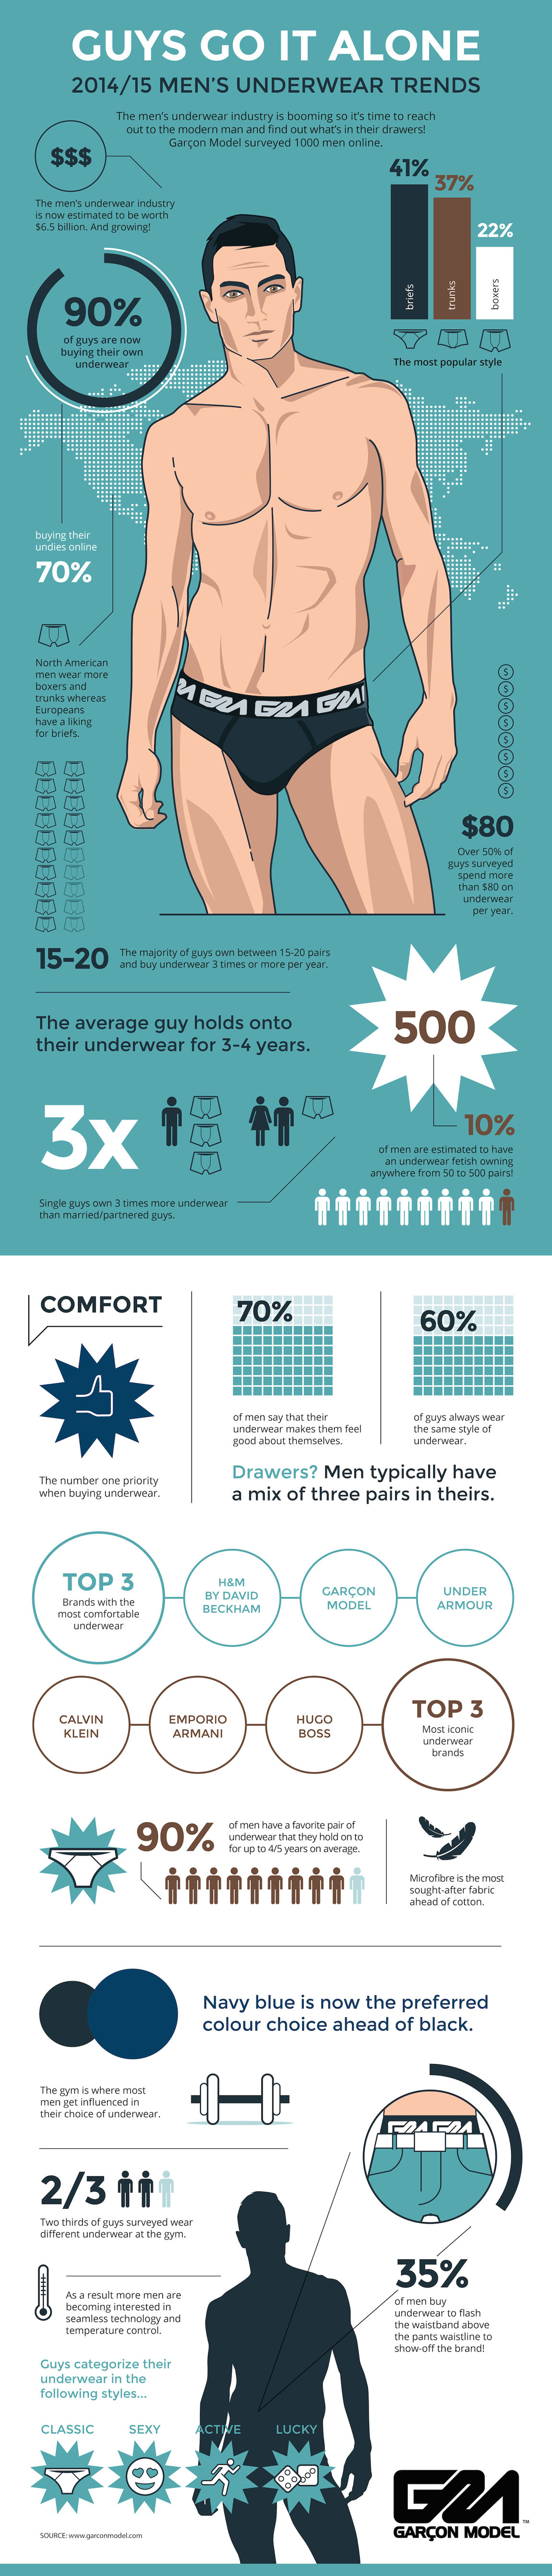 2014-2015_MEN_S_UNDERWEAR_TREND_INFOGRAPHIC_-_Garcon_Model